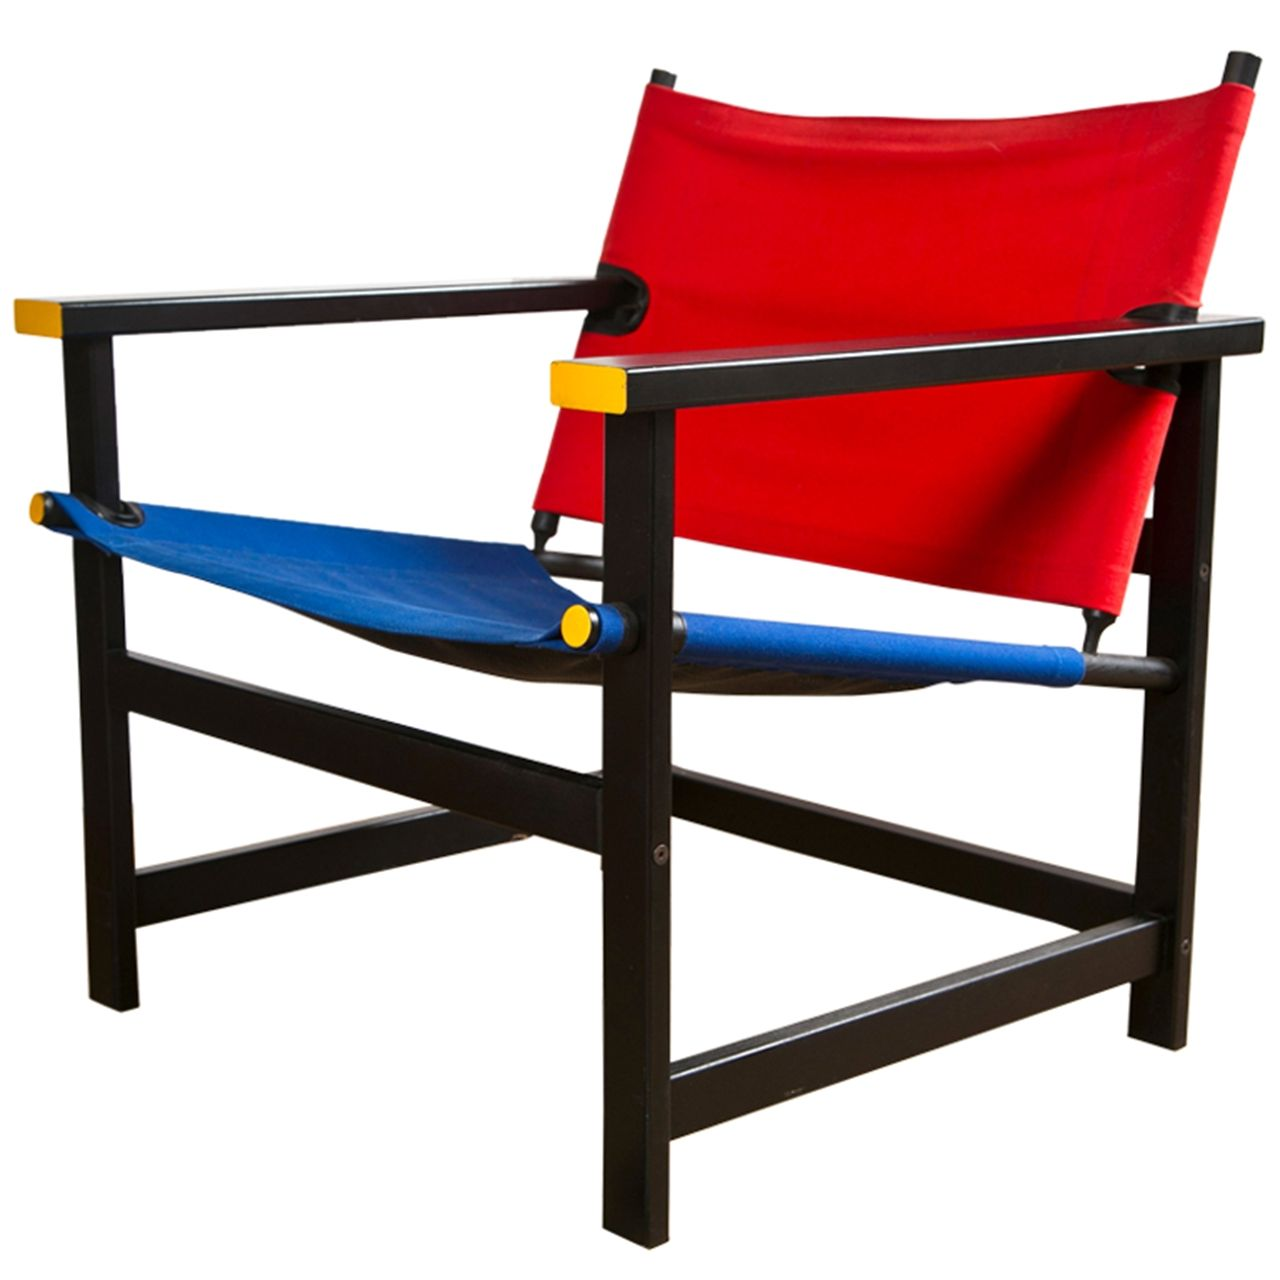 Gerrit rietveld chair for sale - View This Item And Discover Similar Armchairs For Sale At Gerrit Rietveld Was A Renowned Dutch Furniture Designer And Architect